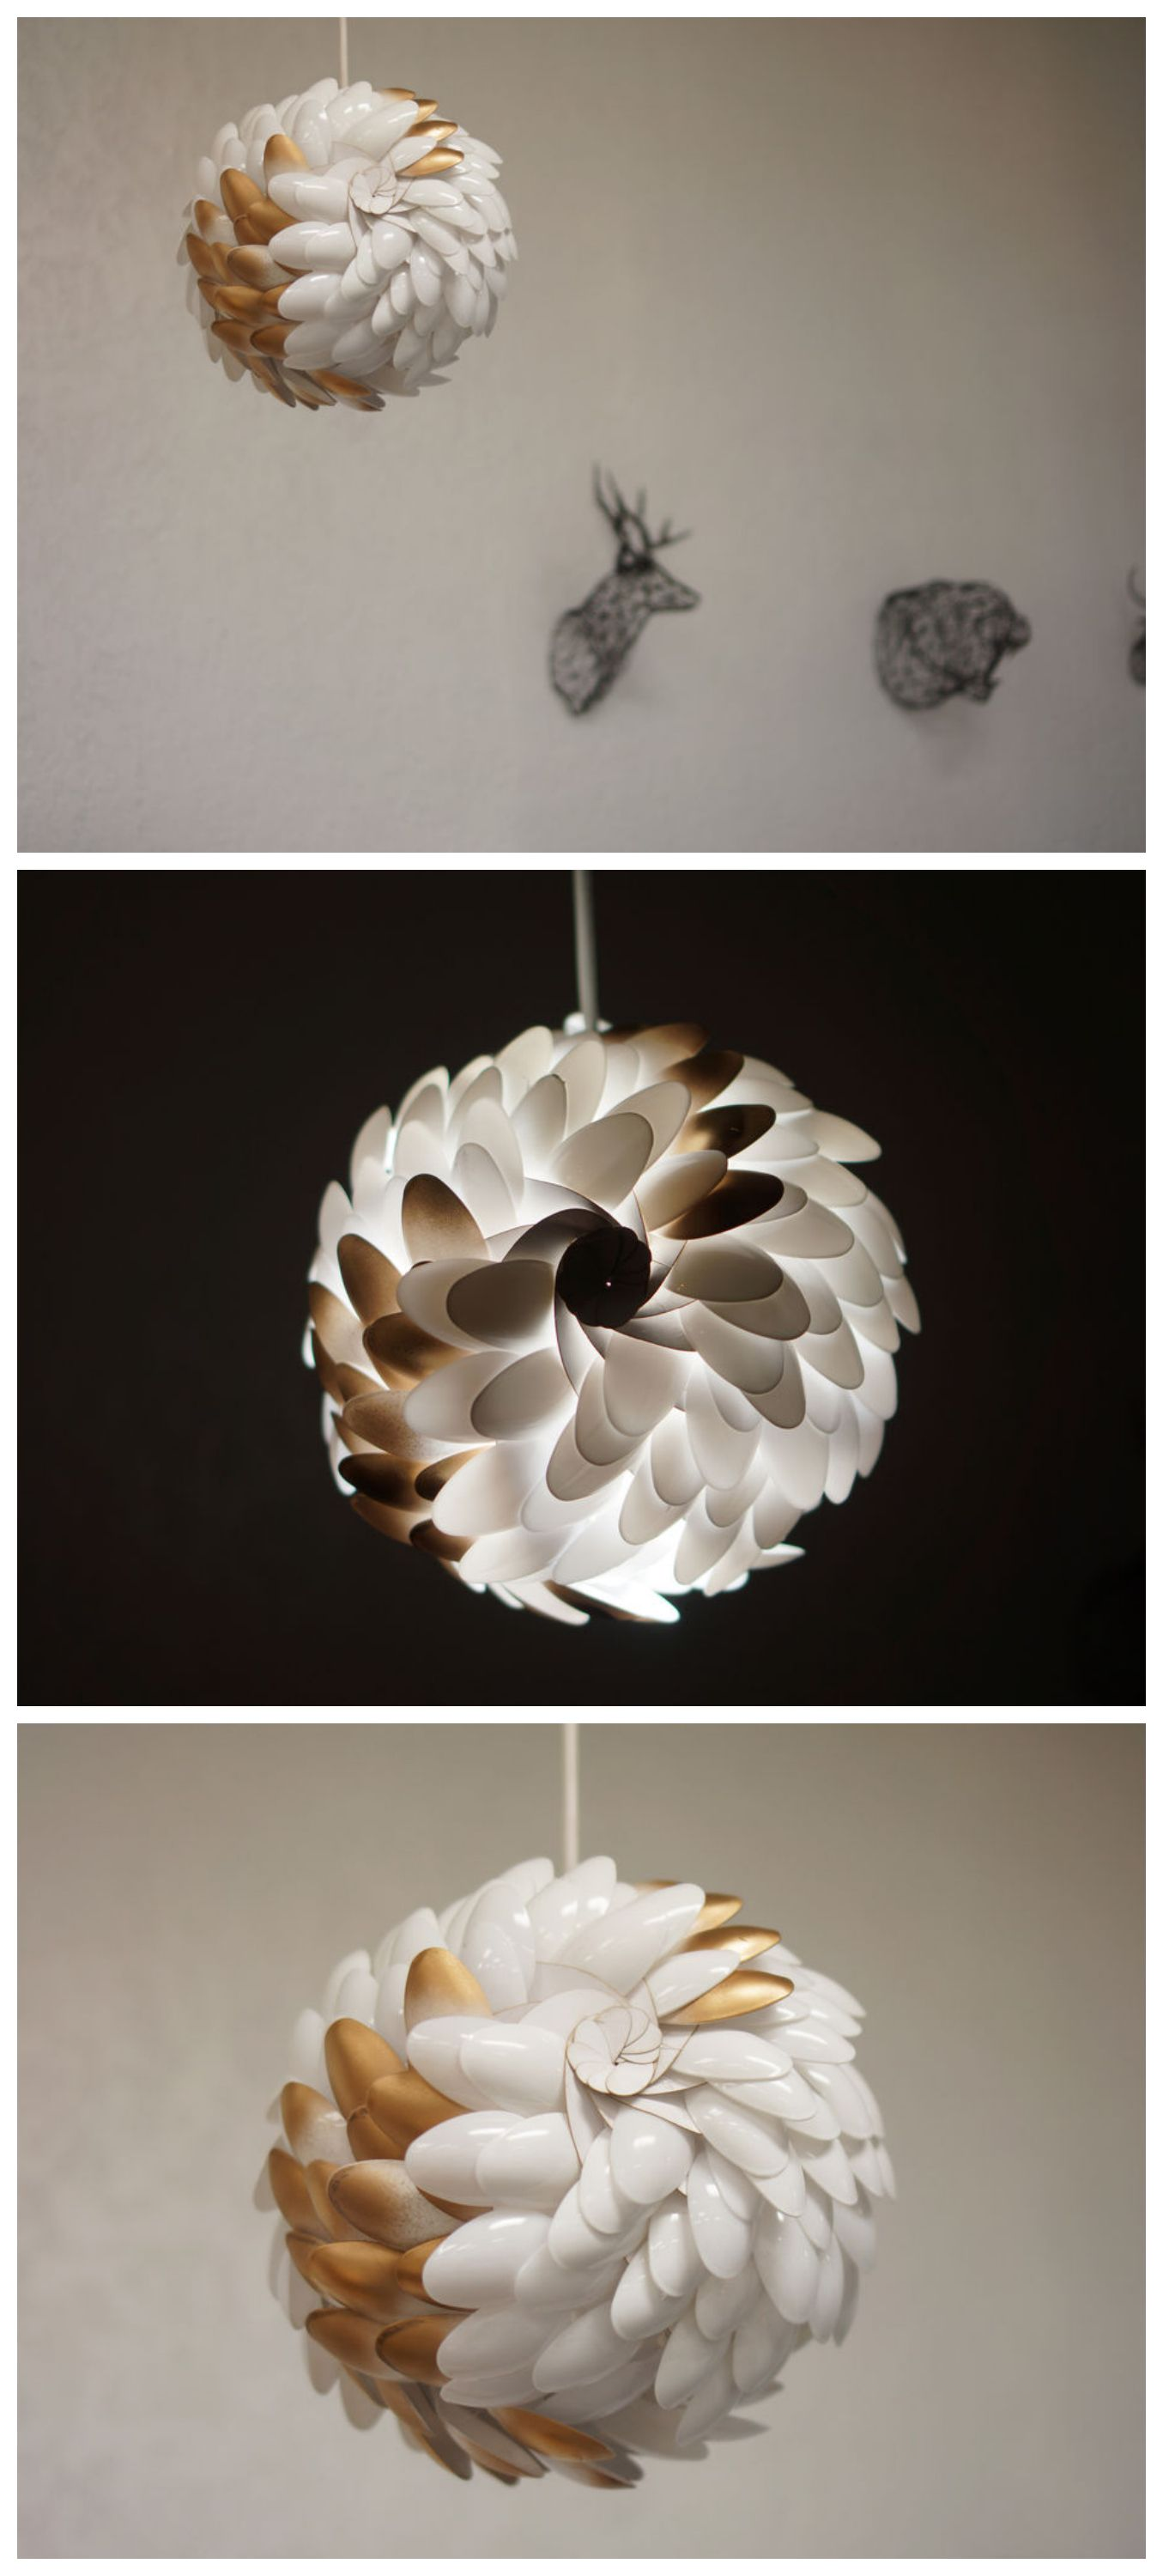 Upcycled Pangolin Lamp #Lighting #Laser Cutter #Paper Craft #Origami